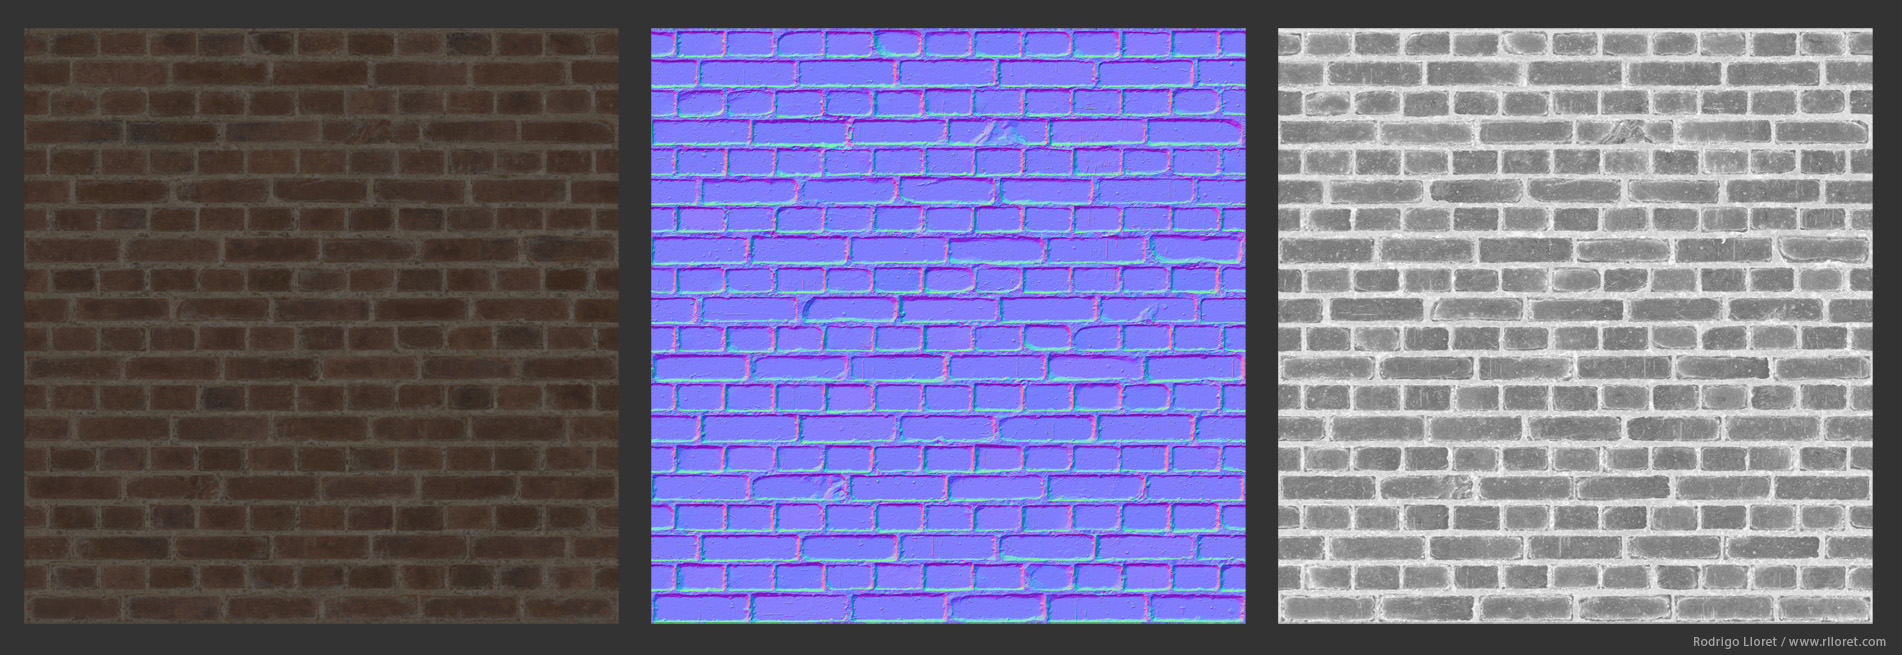 Tile_Bricks1_B1.jpg